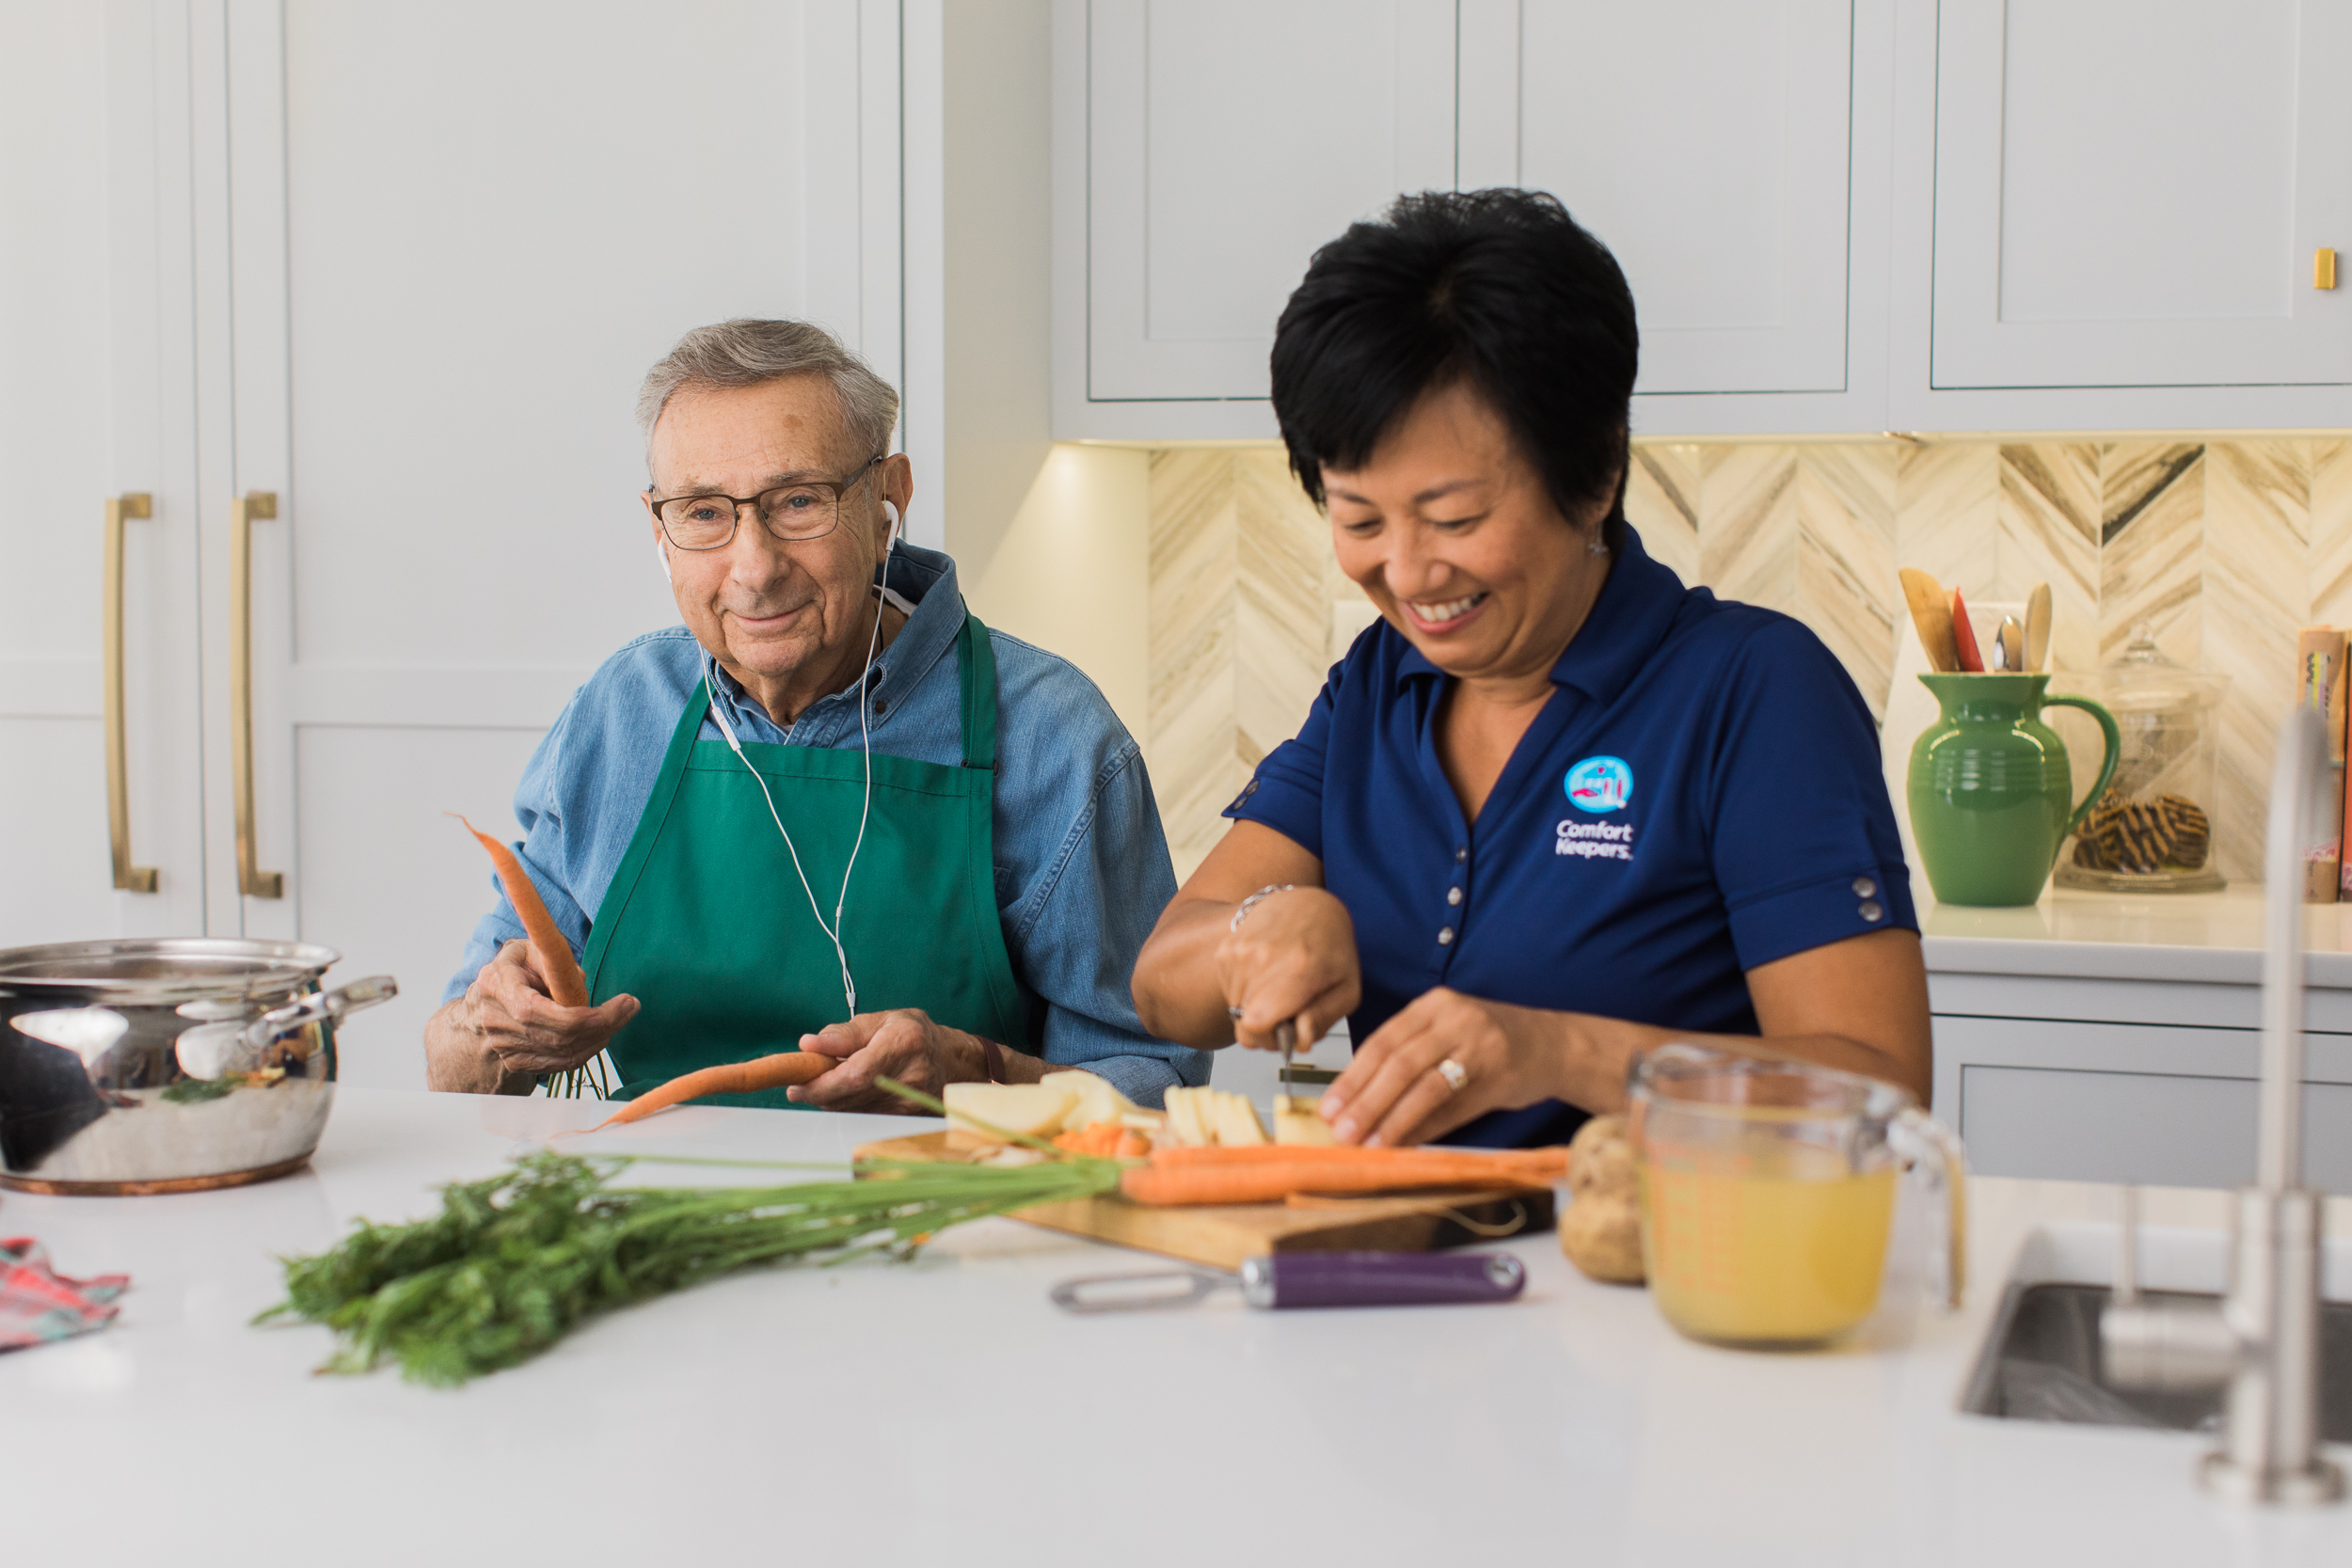 Comfort Keepers Caregiver slicing vegetables as senior listens to music and playfully drums with carrots